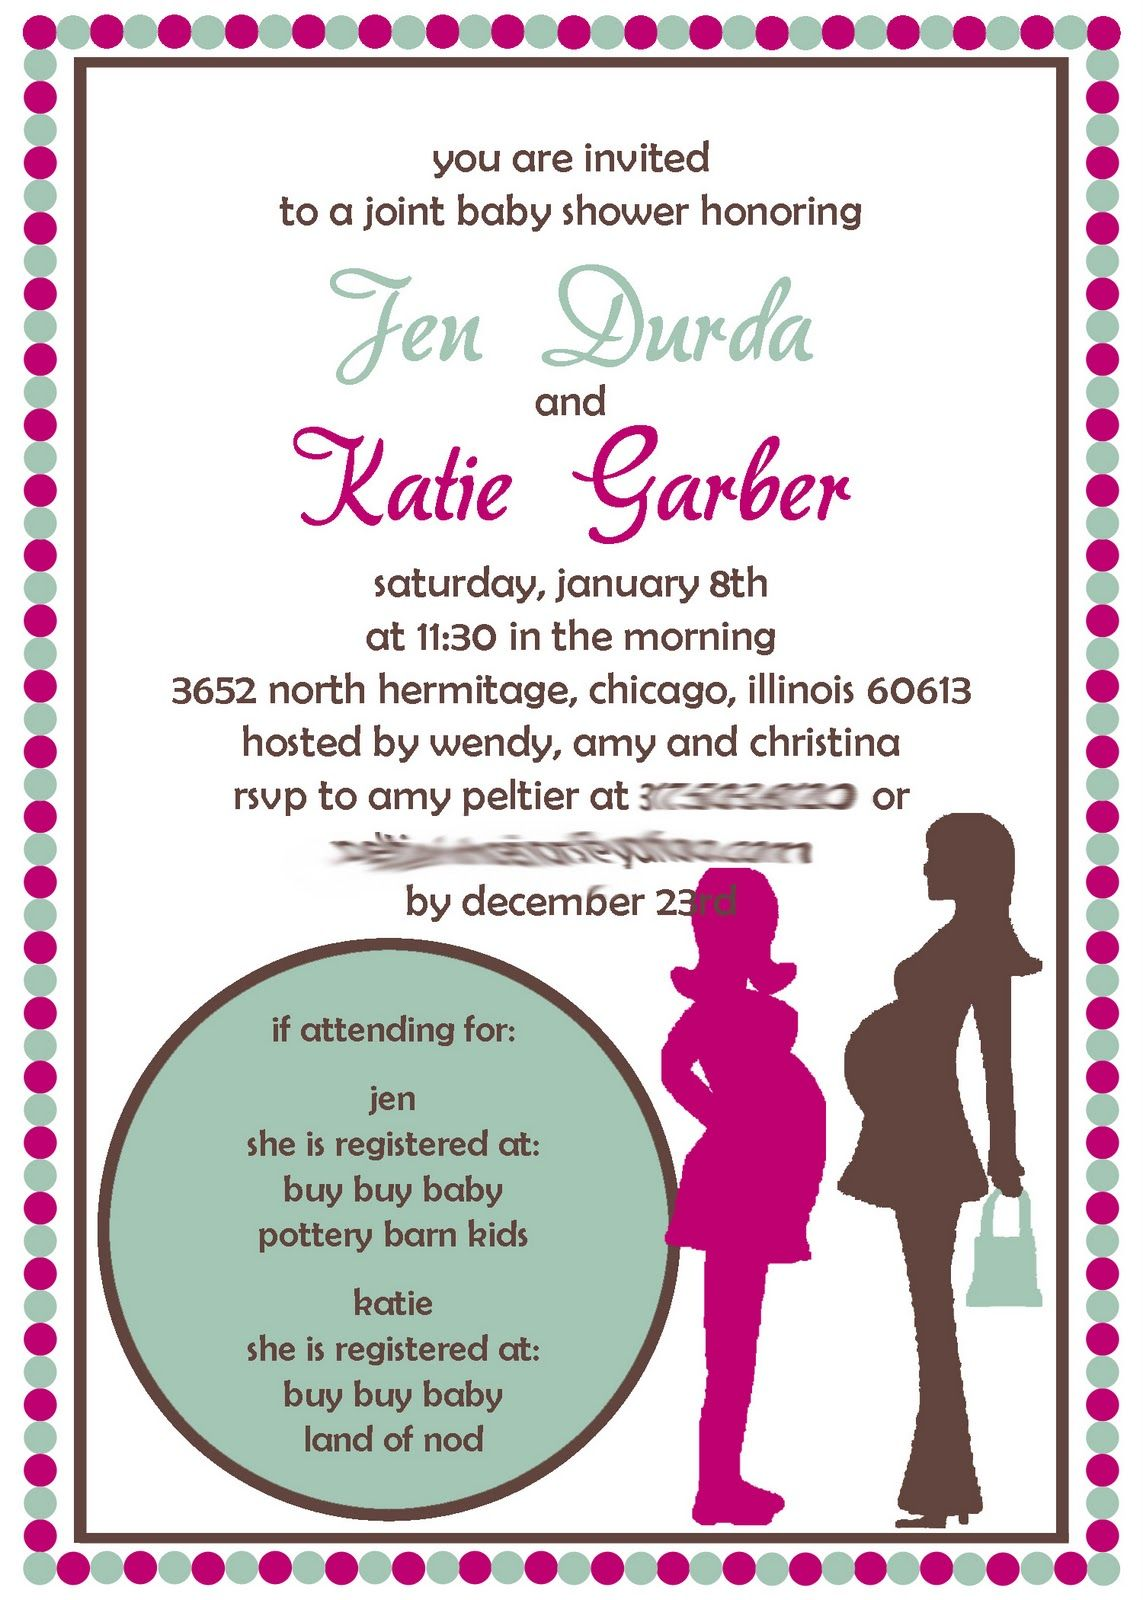 Joint Bridal Shower Invitations